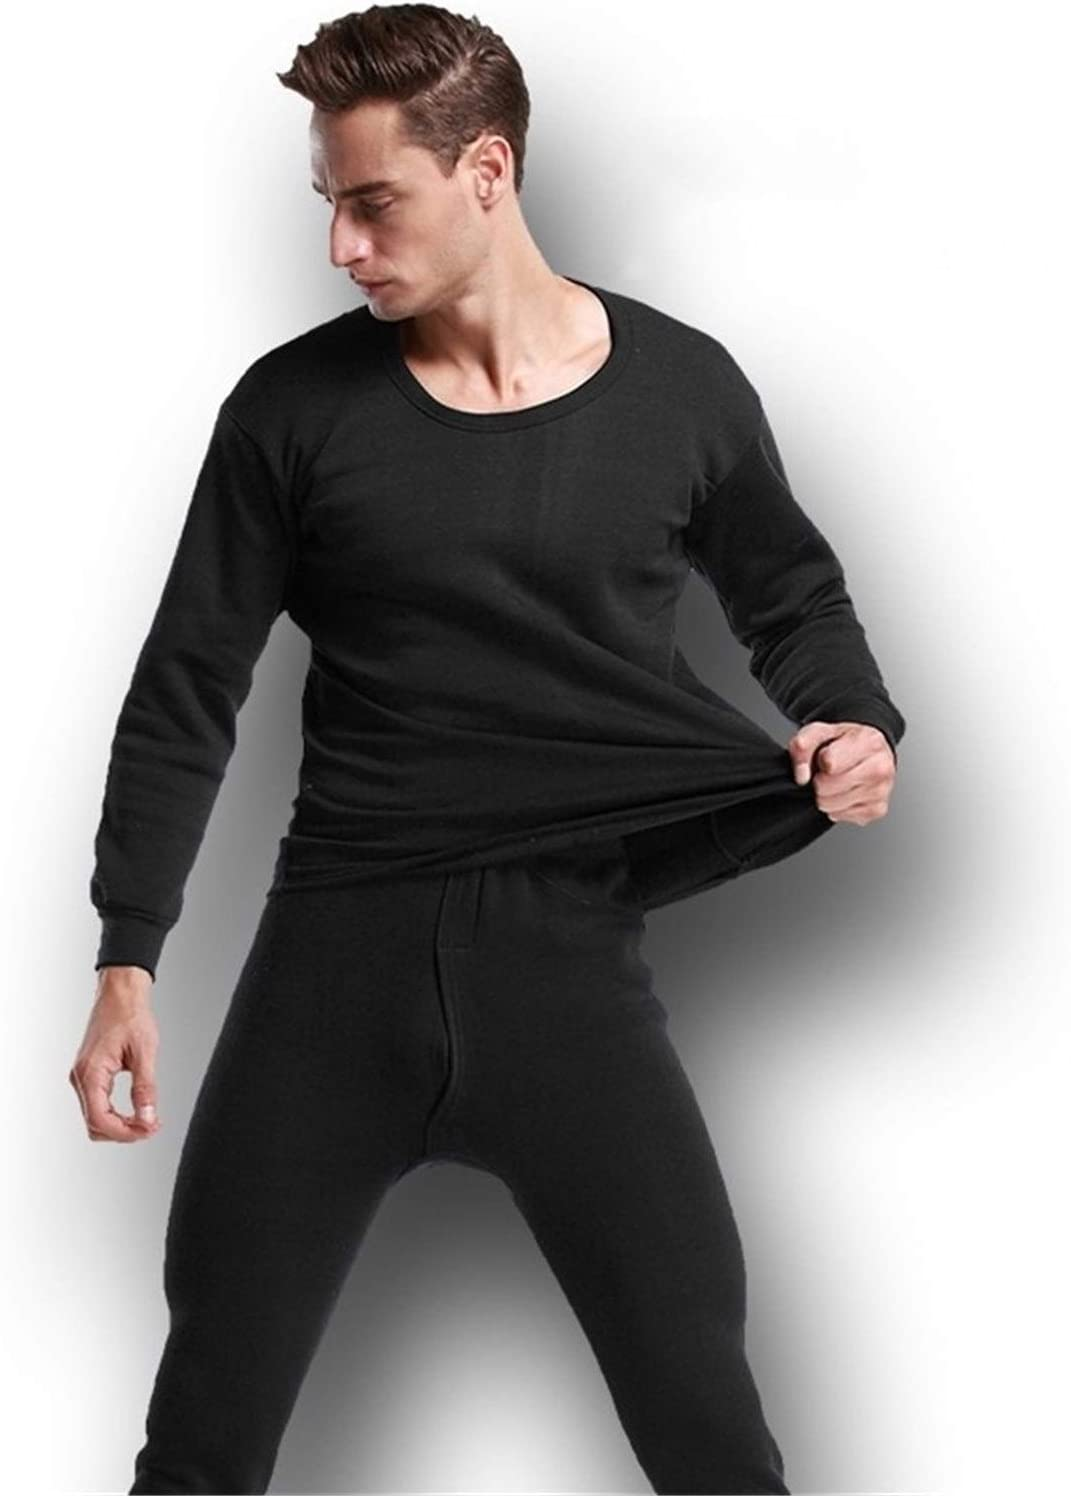 QWERBAM Thermal Underwear Sets for Men Winter Thermo Underwear Winter Clothes Men Thick Thermal Clothing Solid (Color : Black, Size : Medium)